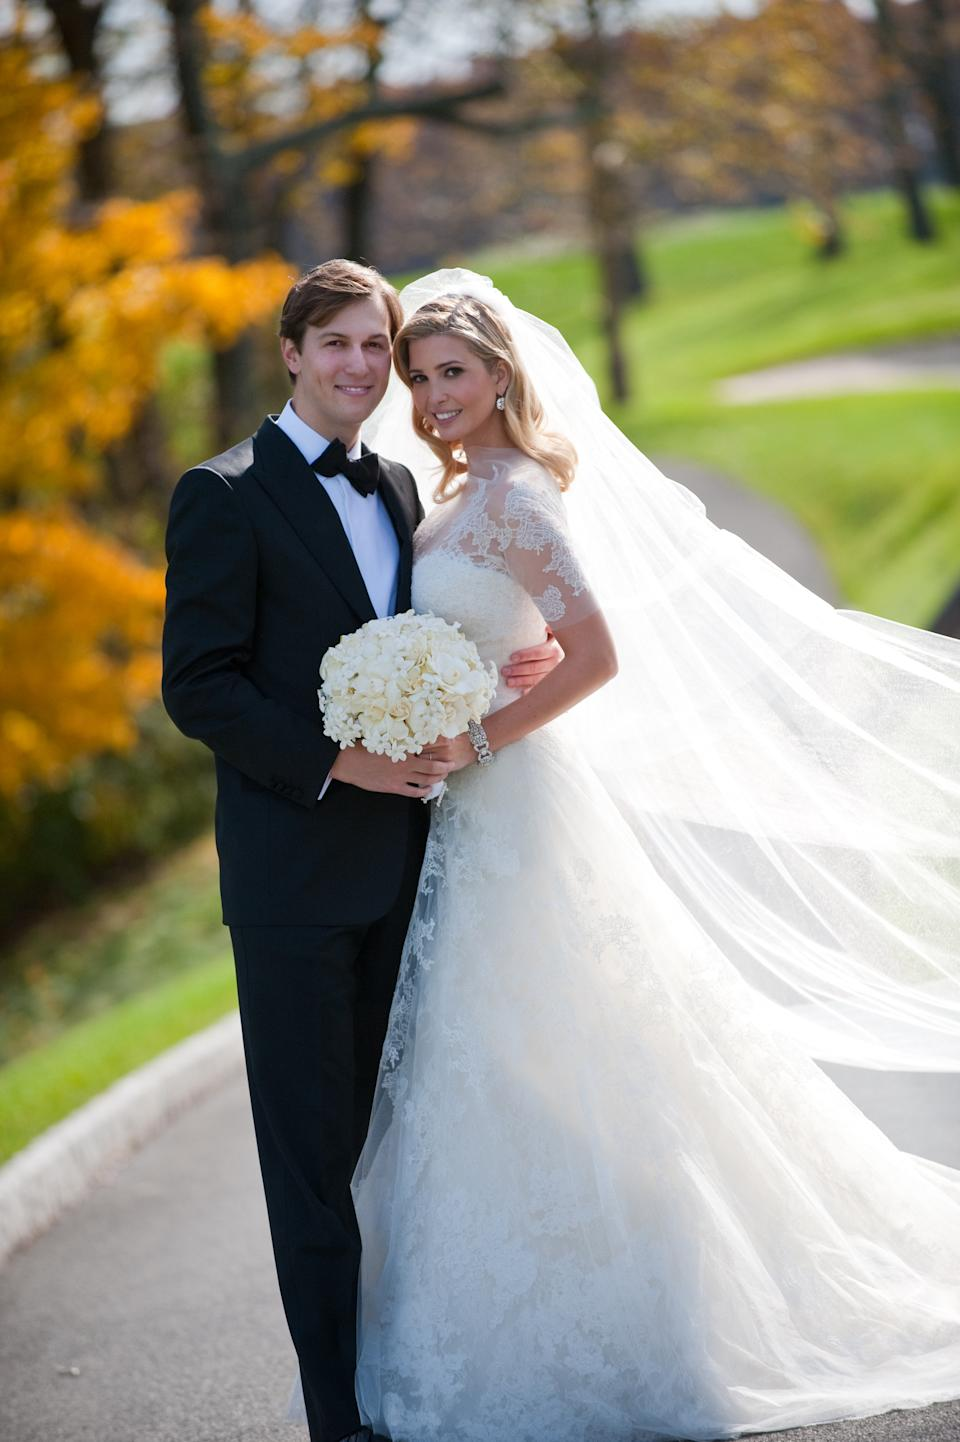 Ivanka Trump and Jared Kushner celebrated their 10-year wedding anniversary on Oct. 25, 2019. Pictured here in 2009. (Photo: Brian Marcus/Fred Marcus Photography via Getty Images)